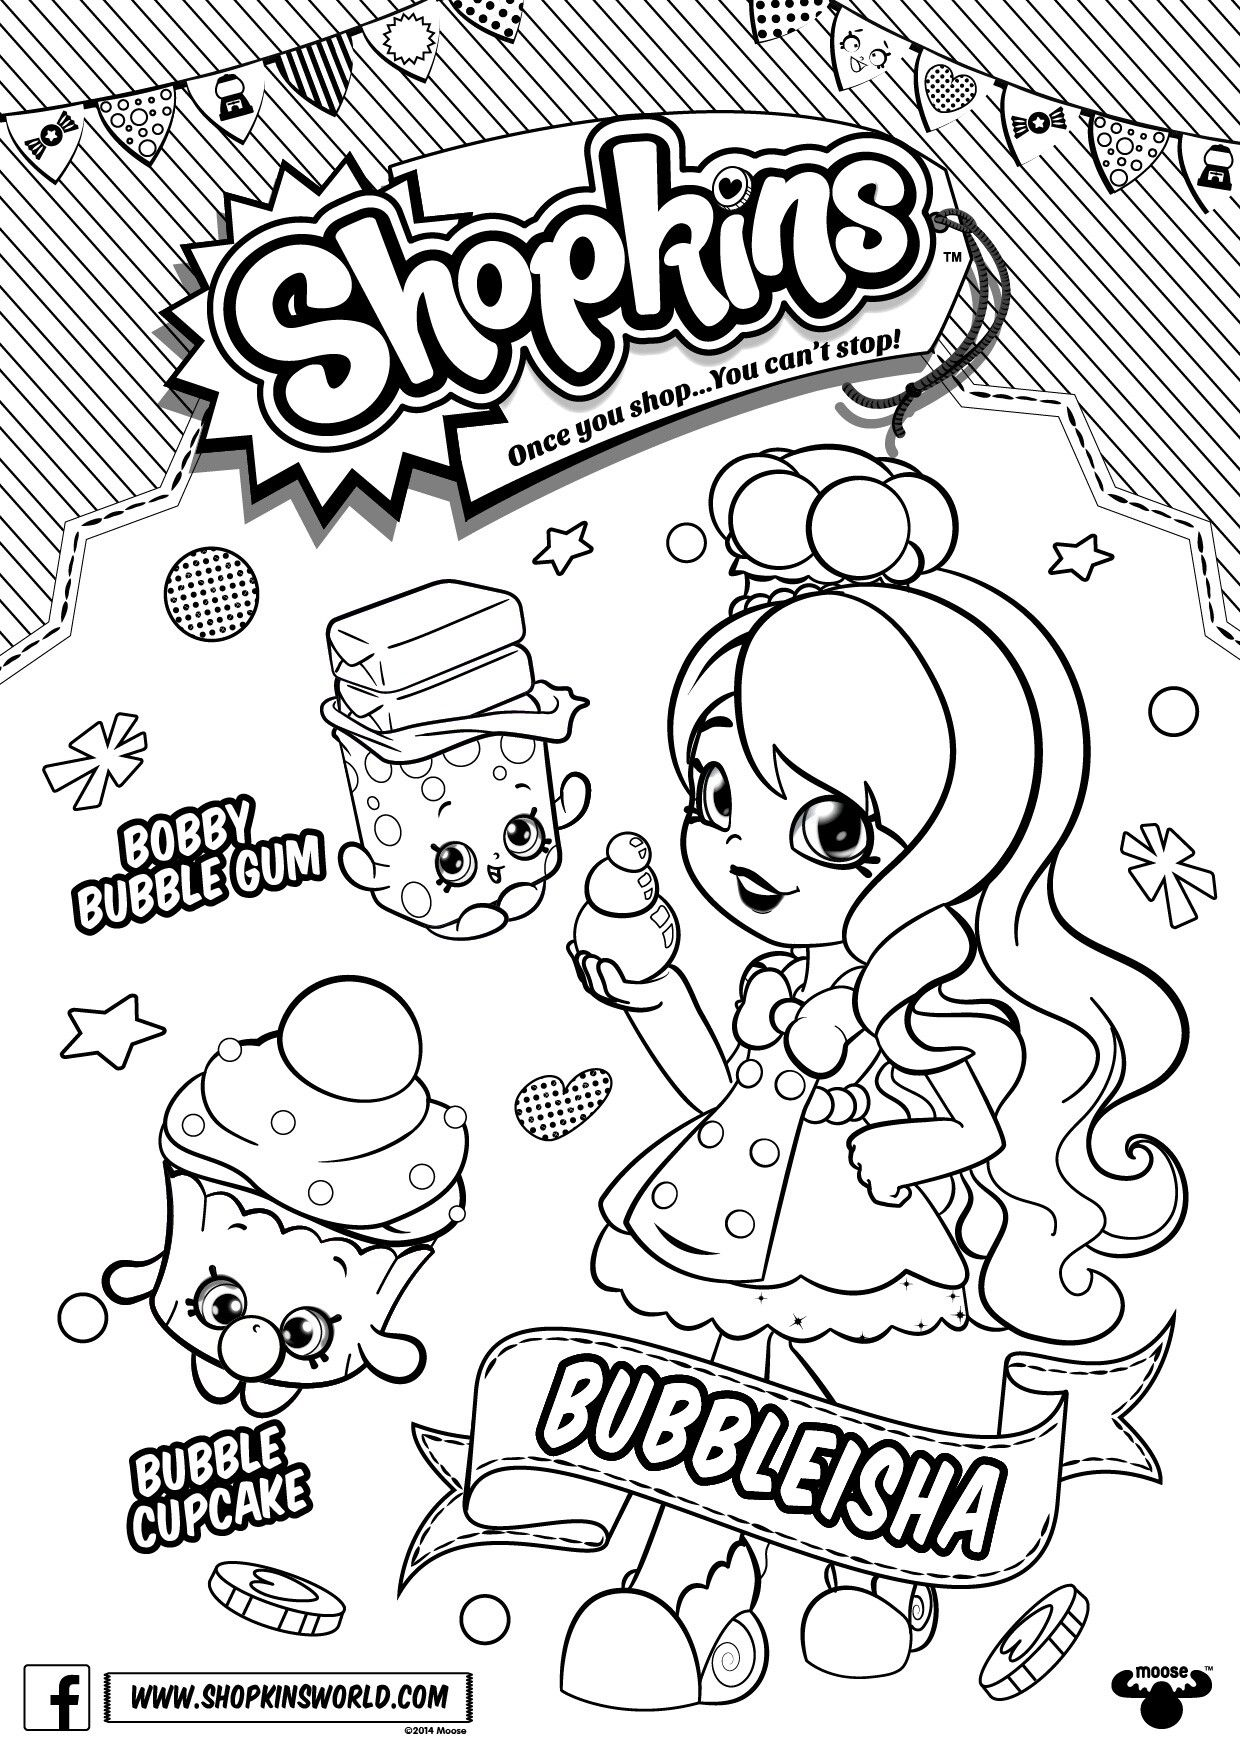 Pin By Iwo Na On Shopkins Shopkins Colouring Pages Shopkins Coloring Pages Free Printable Shopkin Coloring Pages